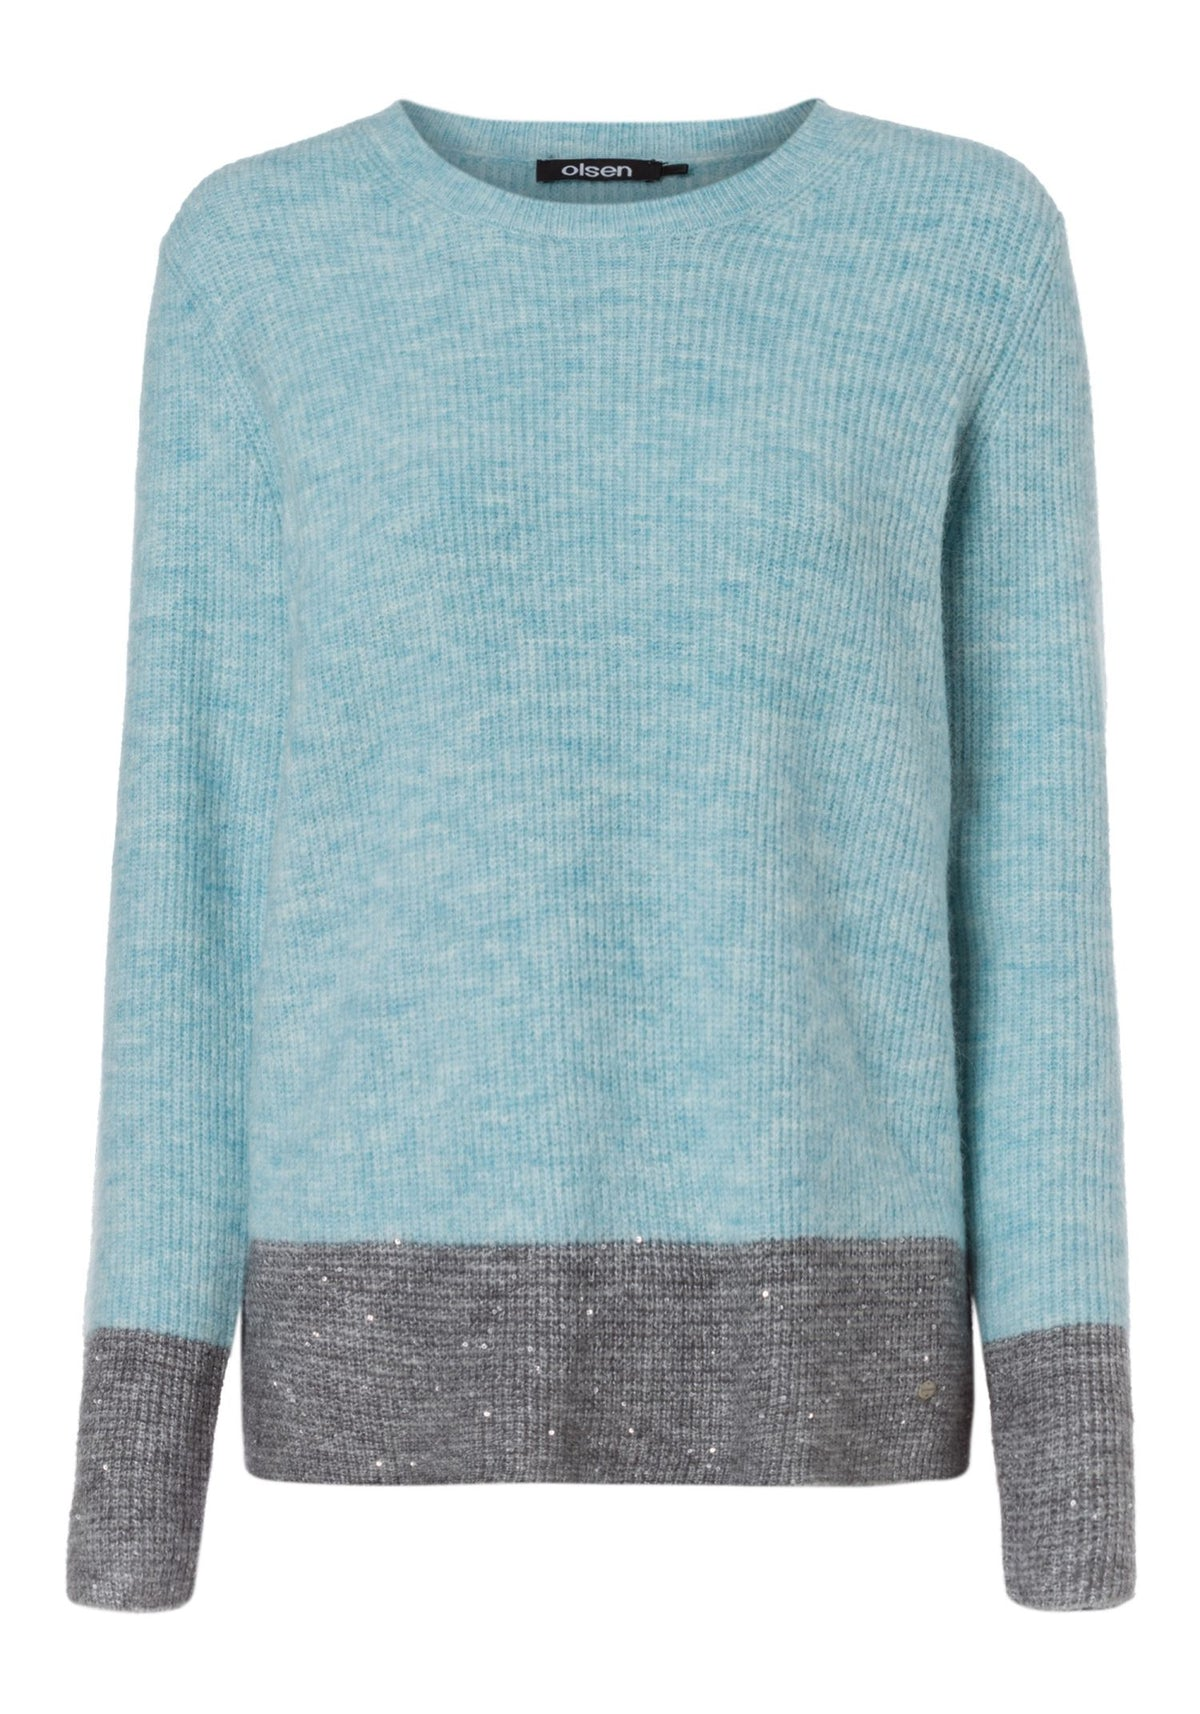 Soft Melange Knit Boat Neck Pullover with Sequined Block Stripe Hem (Henny Fit)